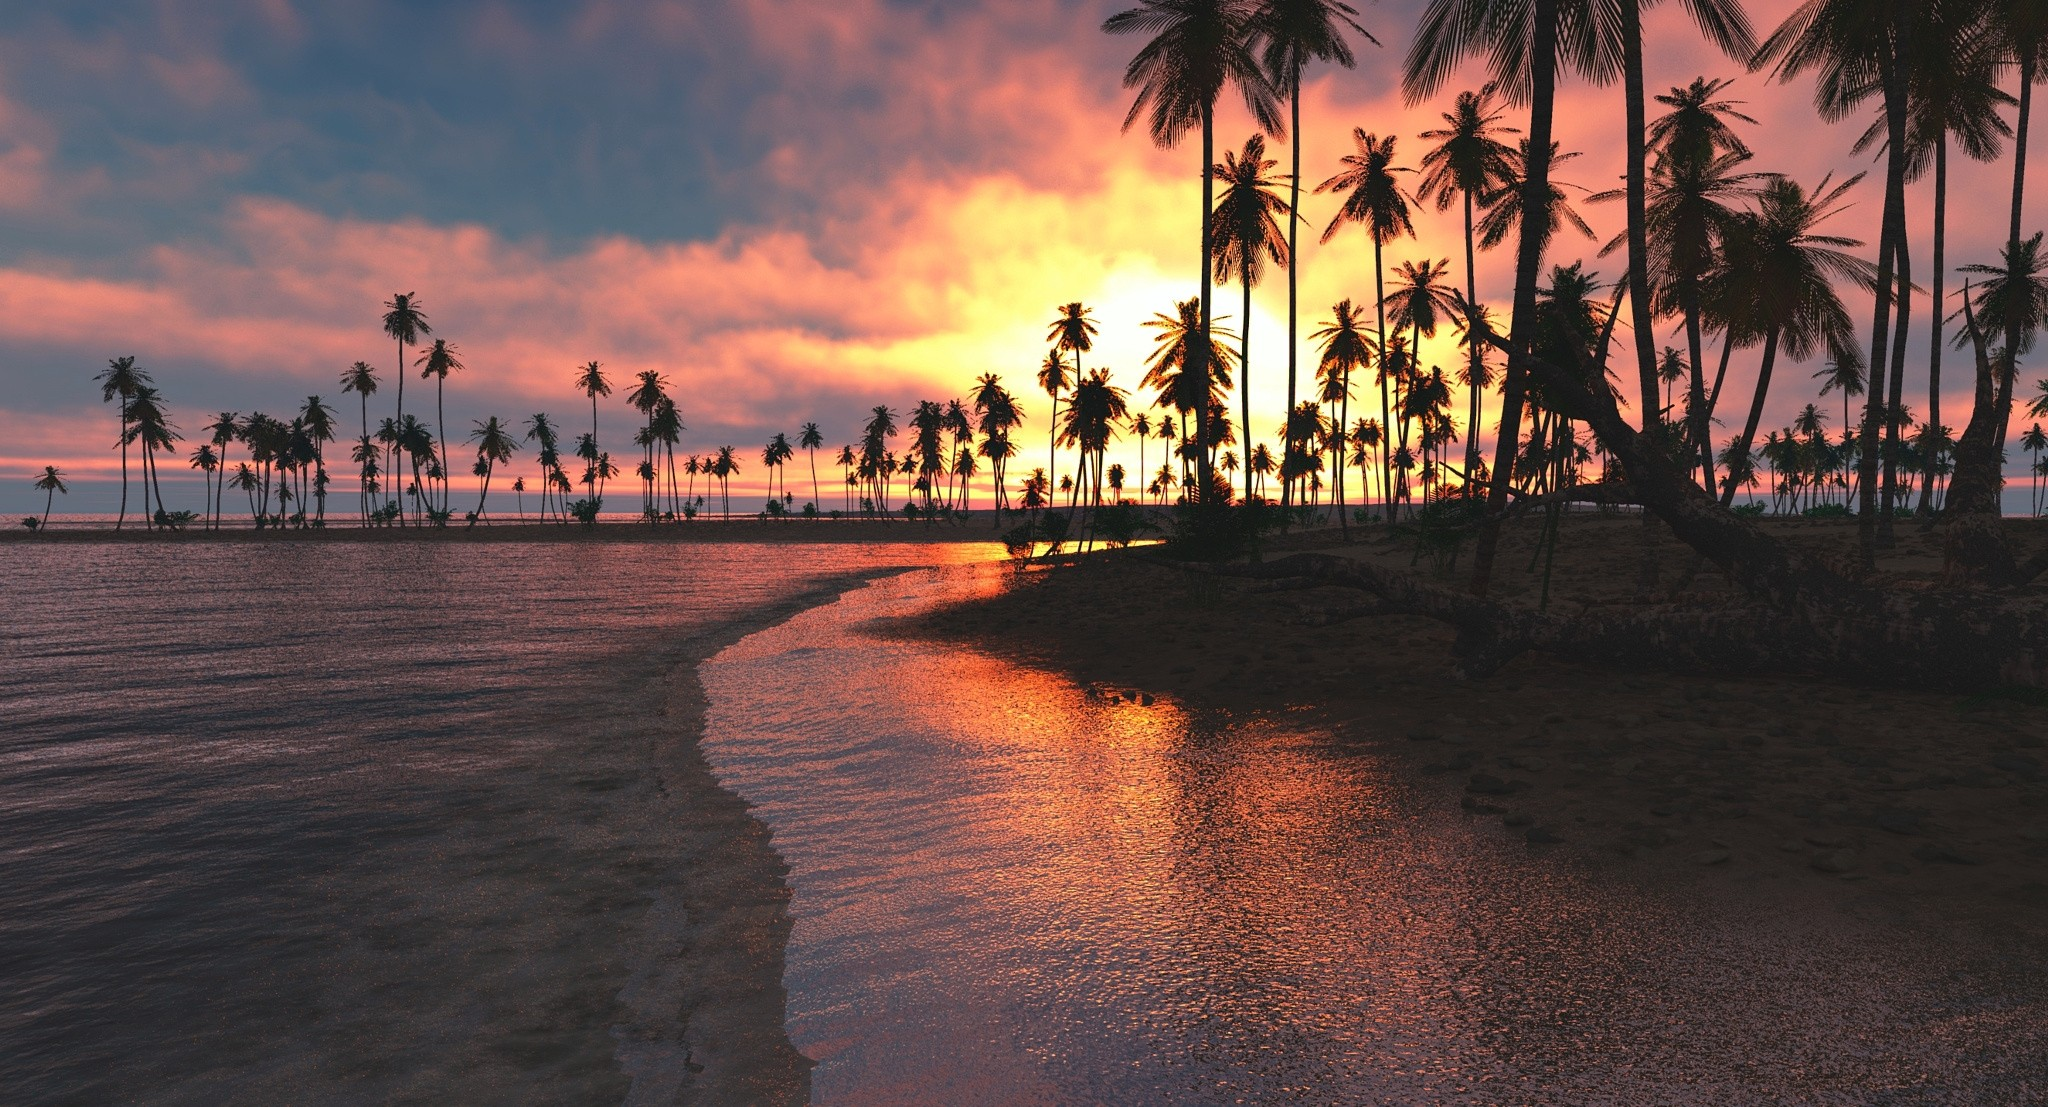 palm trees sunset sea hd nature 4k wallpapers images